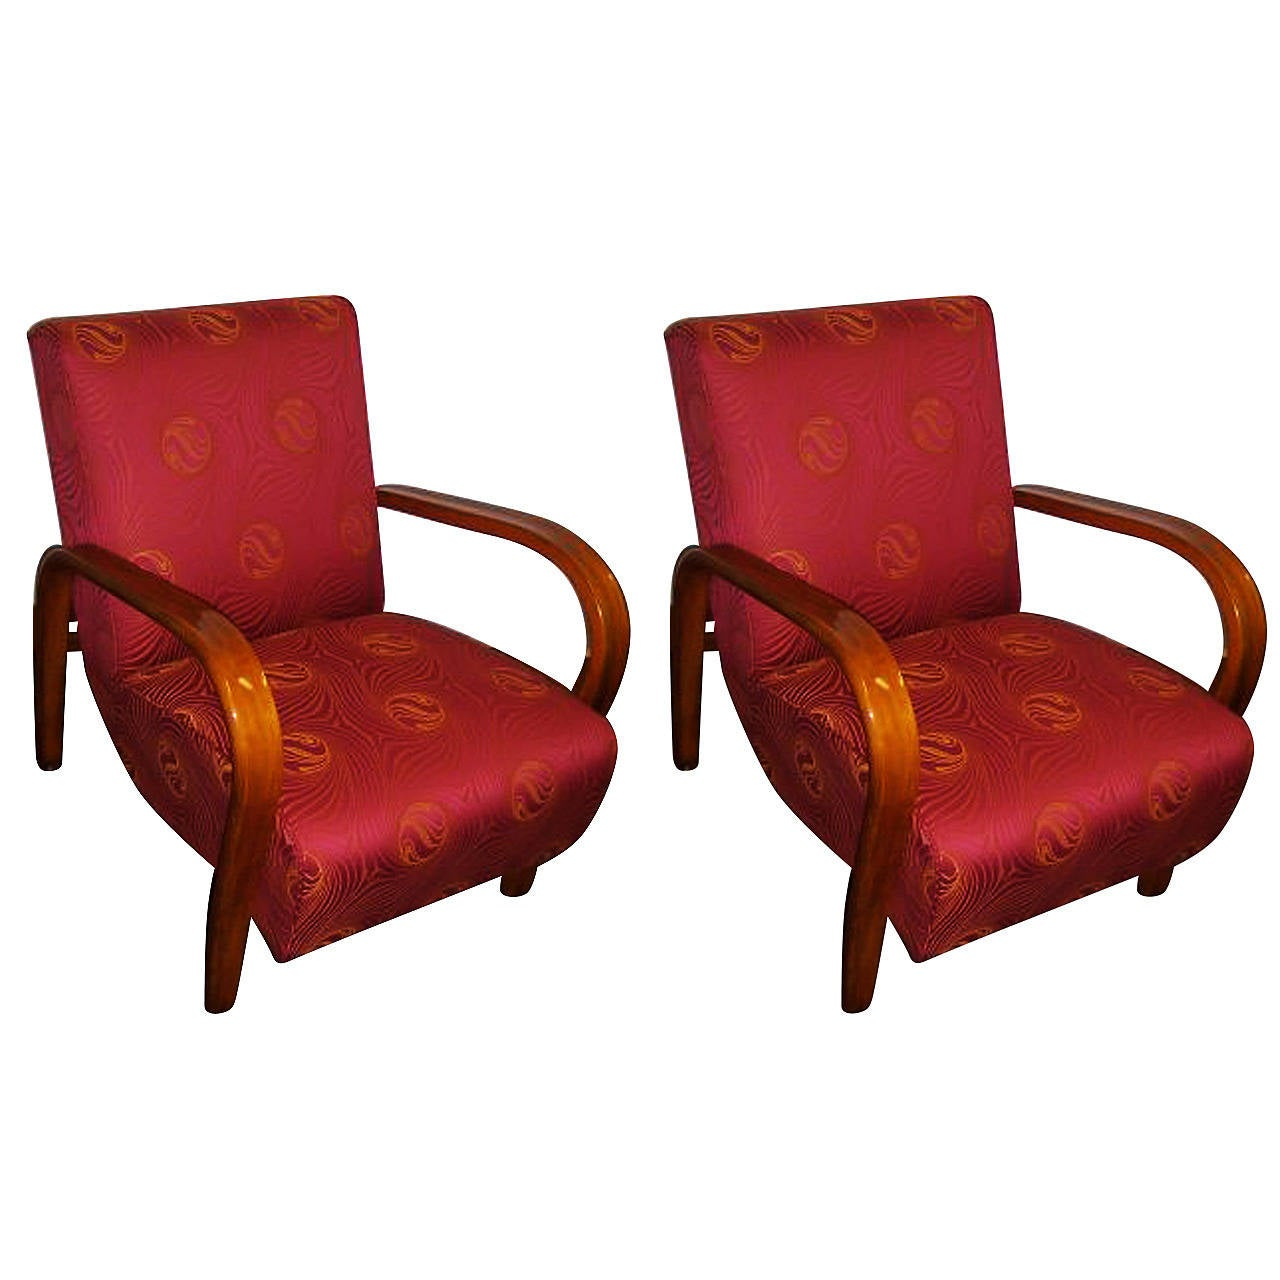 A Pair Of Art Deco Armchairs By Jindrich Halabala